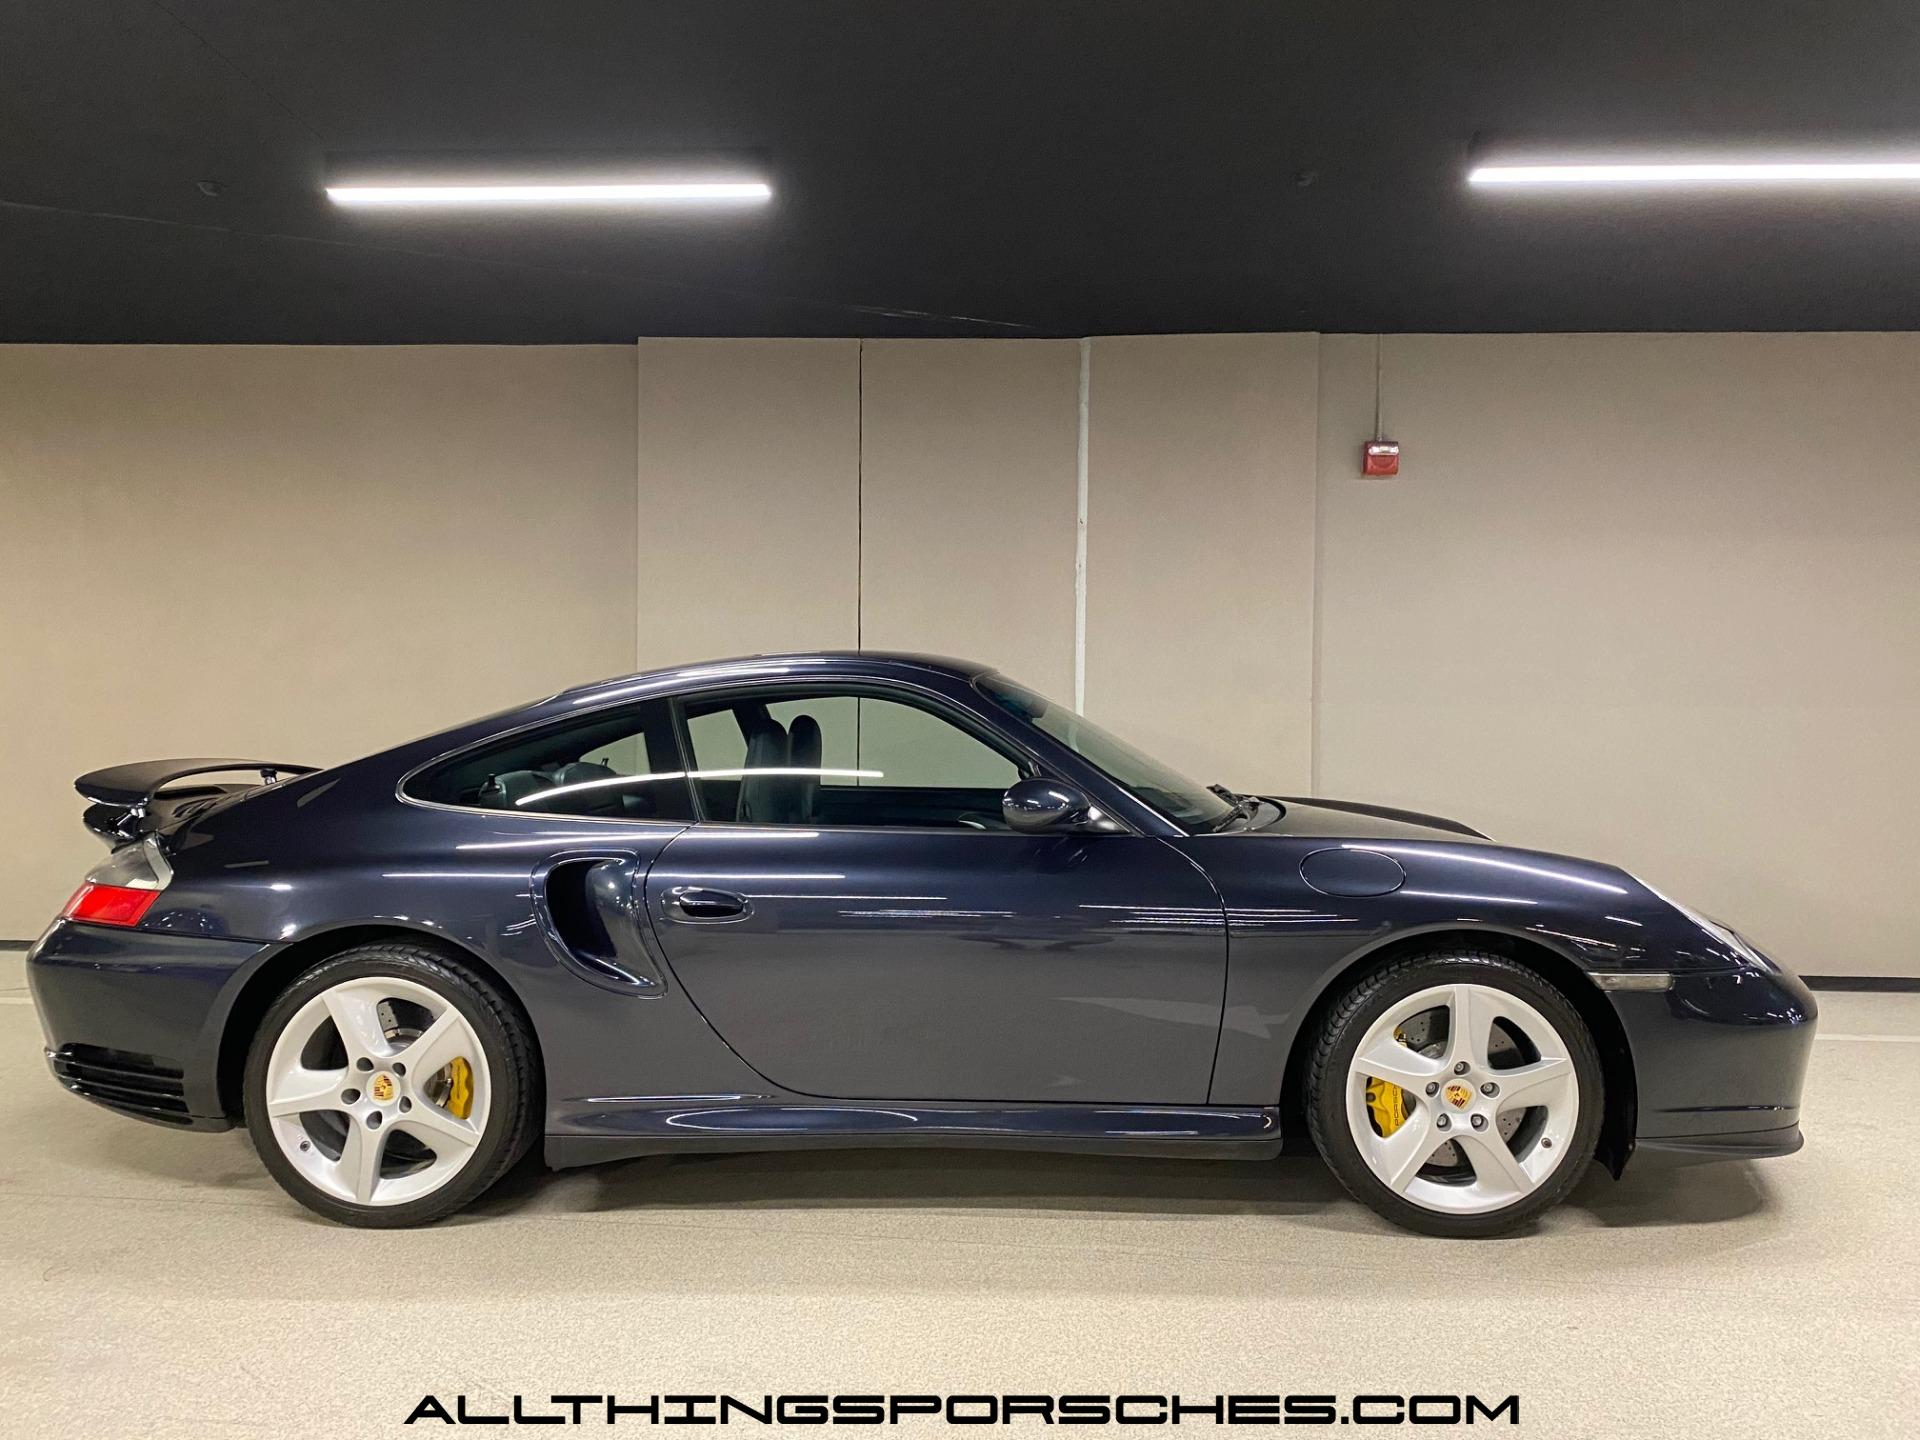 2005 porsche 911 turbo s coupe stock 3625 for sale near. Black Bedroom Furniture Sets. Home Design Ideas